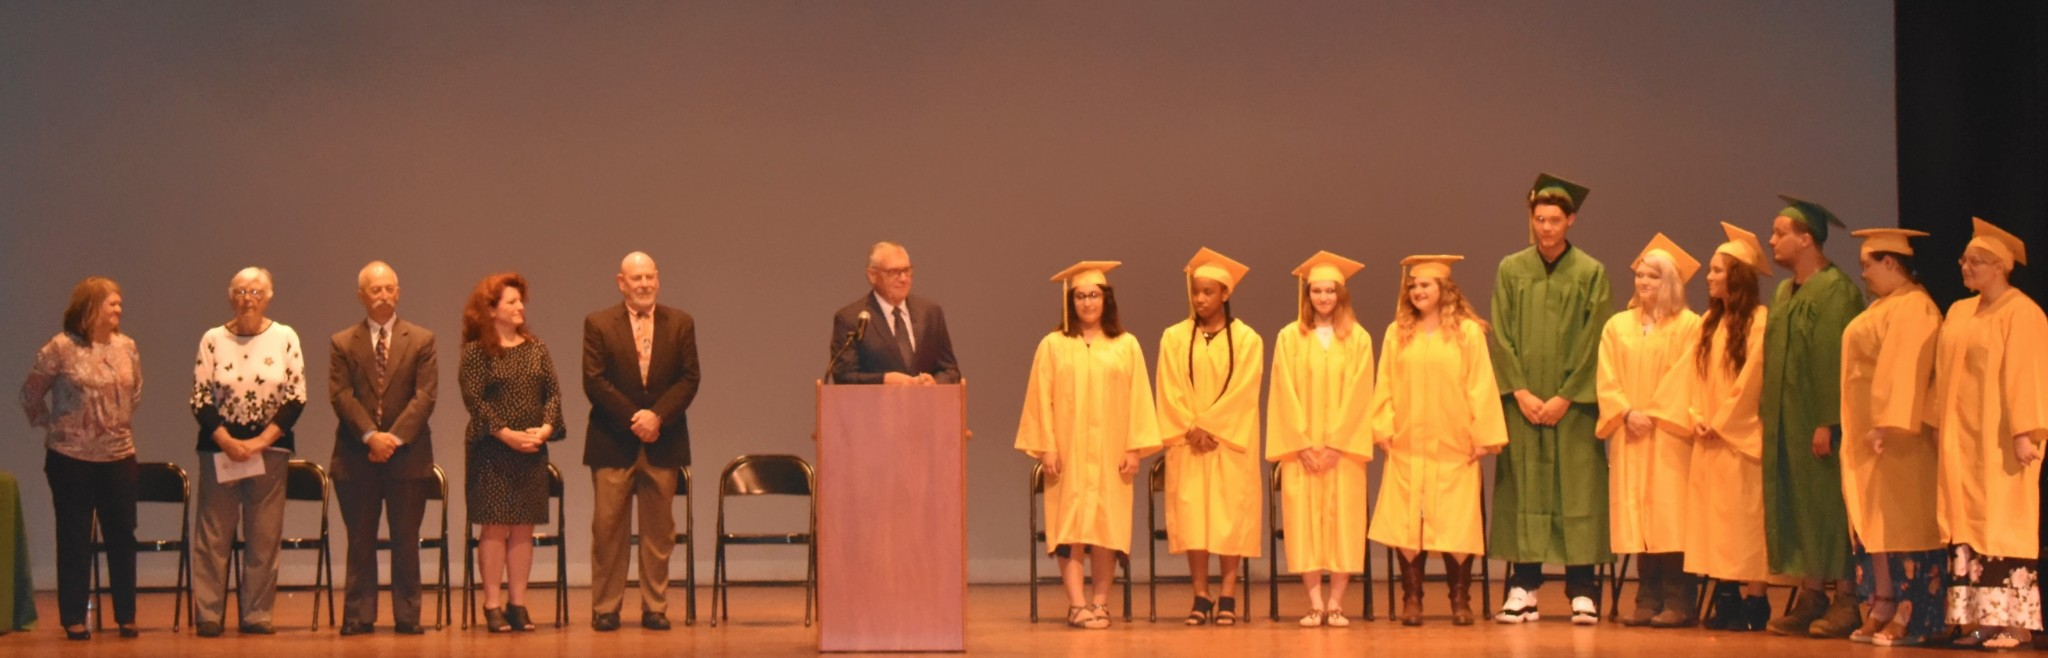 Oregon Eagle Learning Center commencement ceremonies. (Submitted photo)